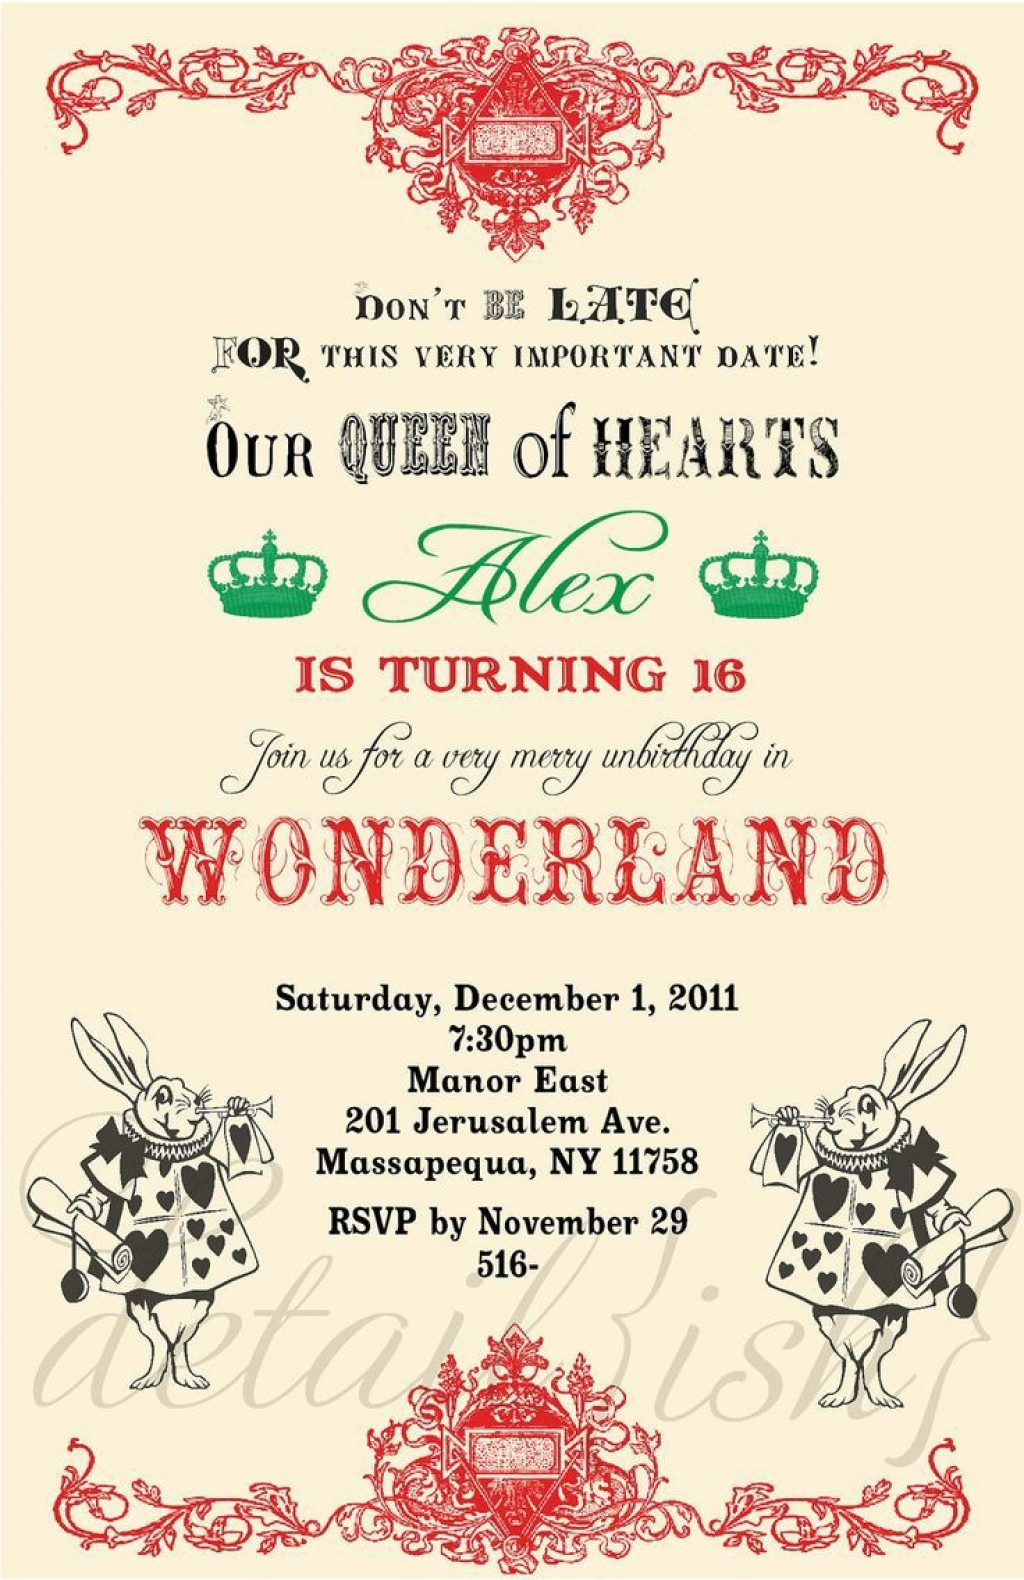 009 Unforgettable Alice In Wonderland Party Template Image  Templates Invitation FreeLarge